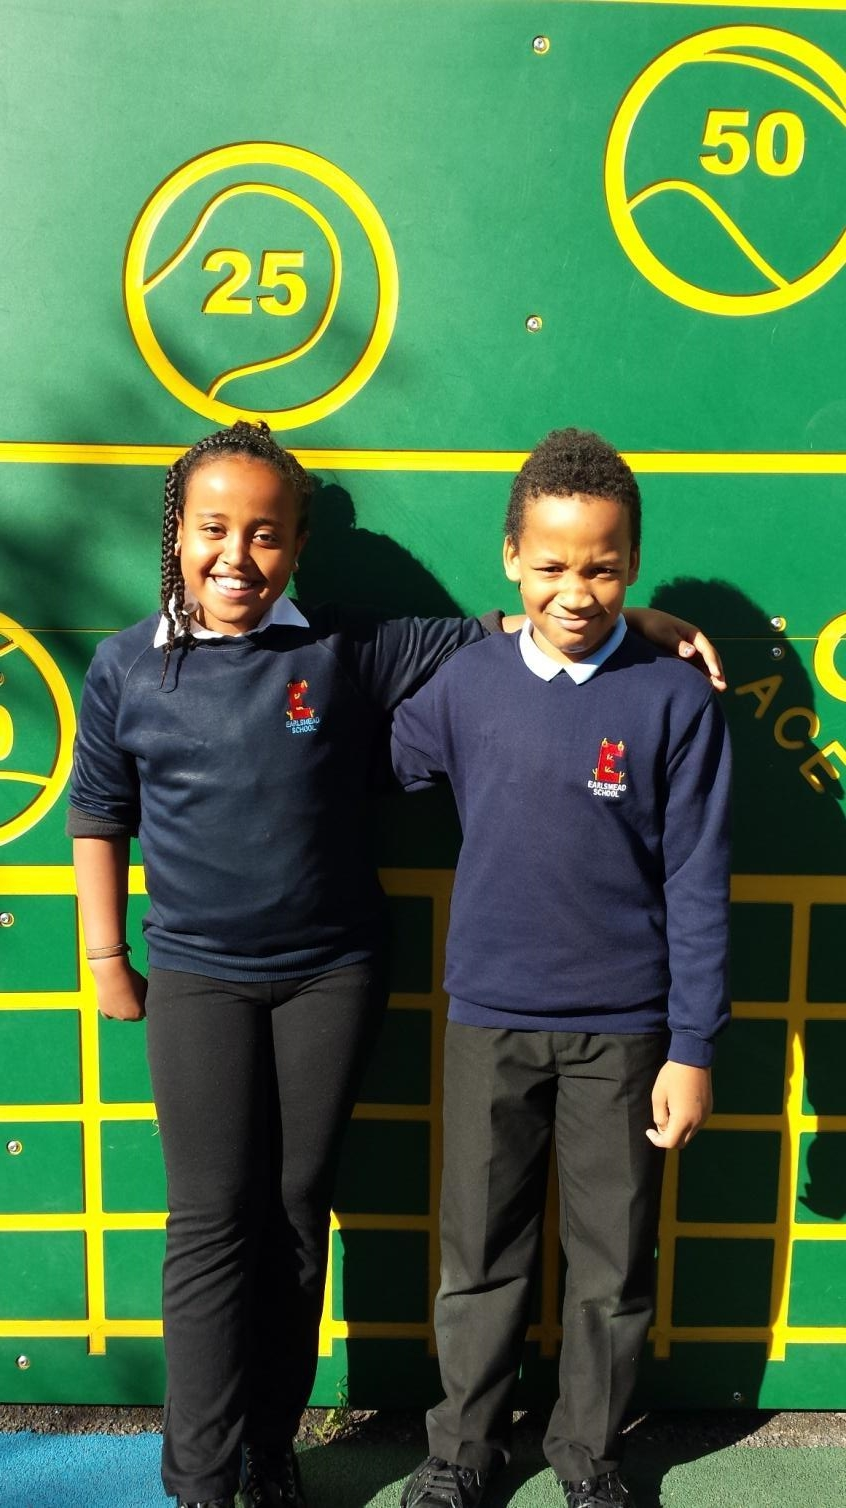 OUR SCHOOL COUNCILLORS ARE: YOSAN and KHAIRI